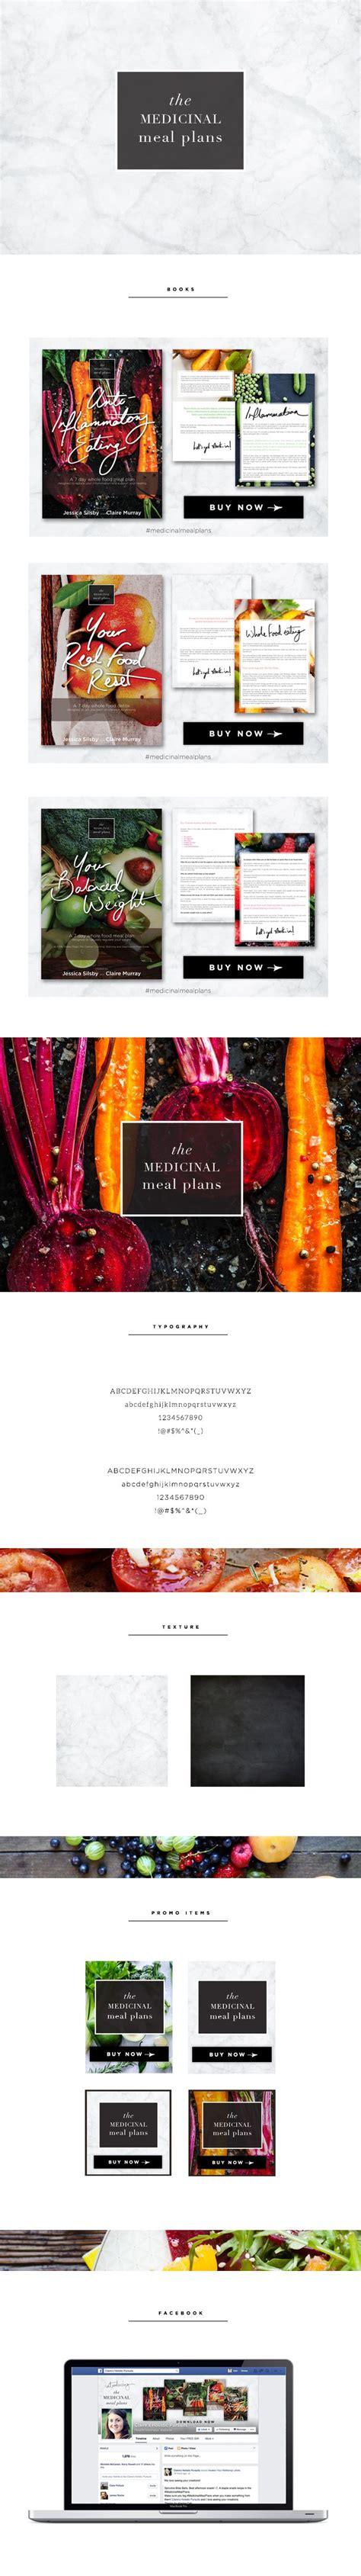 ebook design inspiration 79 best images about awesome ebook inspiration on